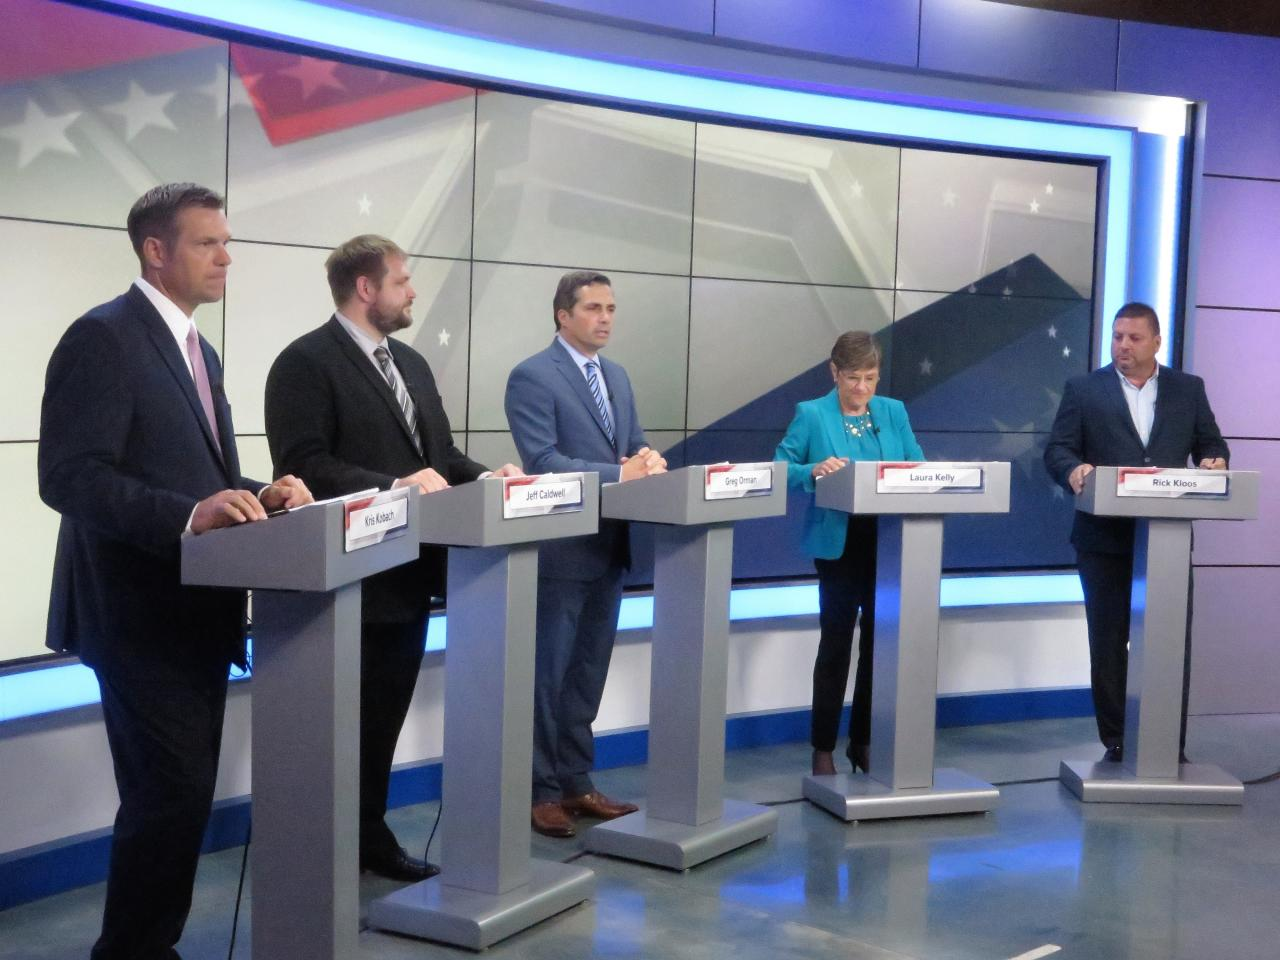 Republican Kris Kobach, from left to right, Libertarian Jeff Caldwell, independent Greg Orman, Democrat Laura Kelly and independent Rick Kloos participate in a gubernatorial debate at KWCH-TV, Tuesday, Oct. 9, 2018, in Wichita, Kan. (Dion Lefler/The Wichita Eagle via AP)